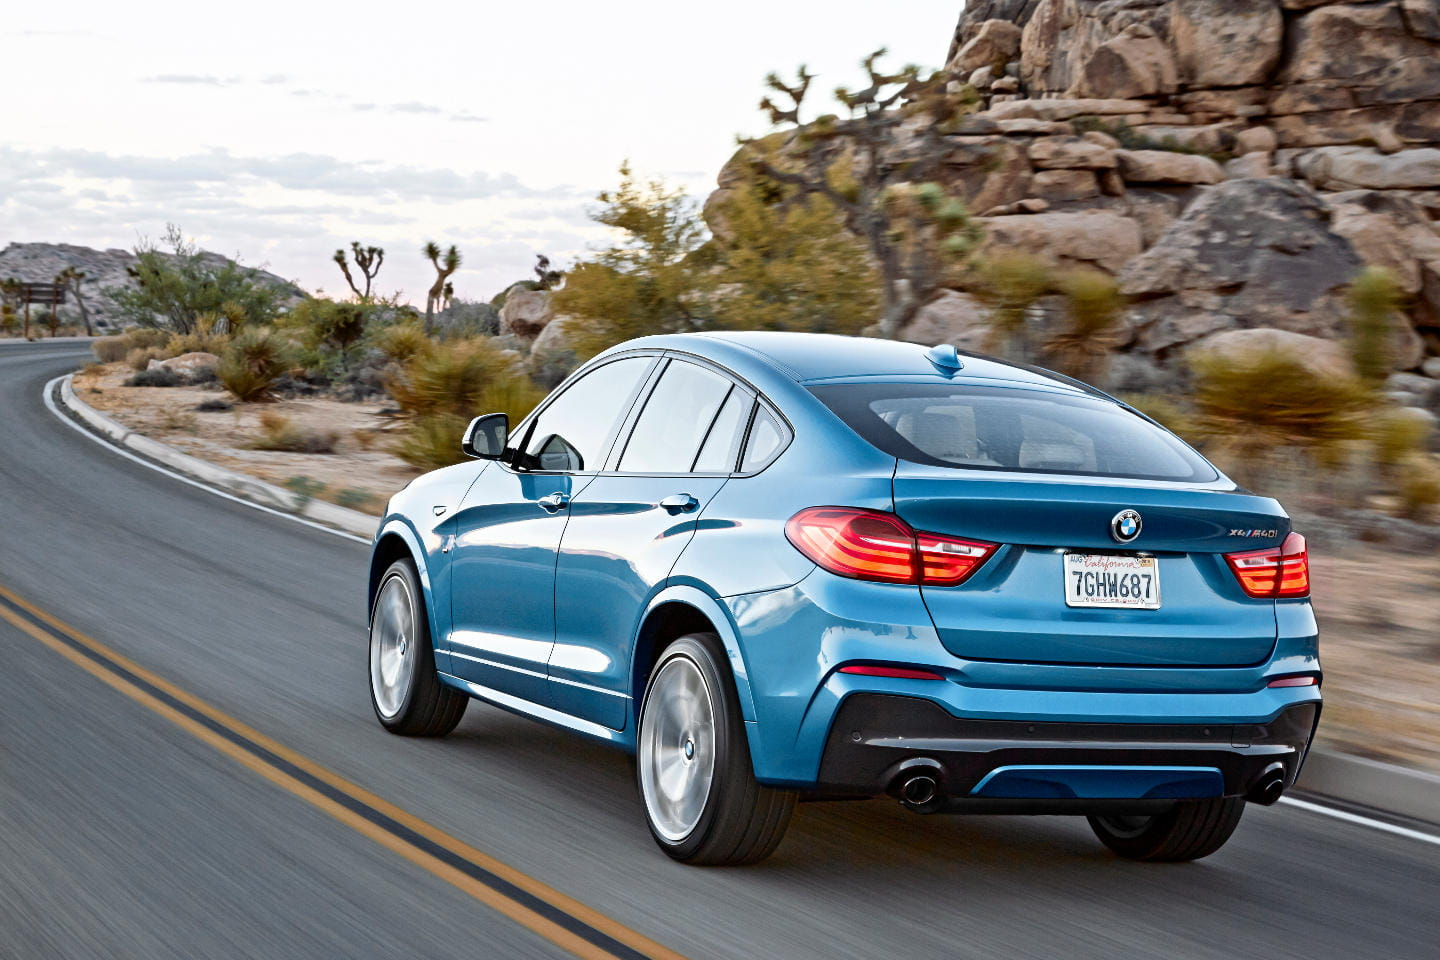 BMW_X4_M40i_2016_art_DM_2